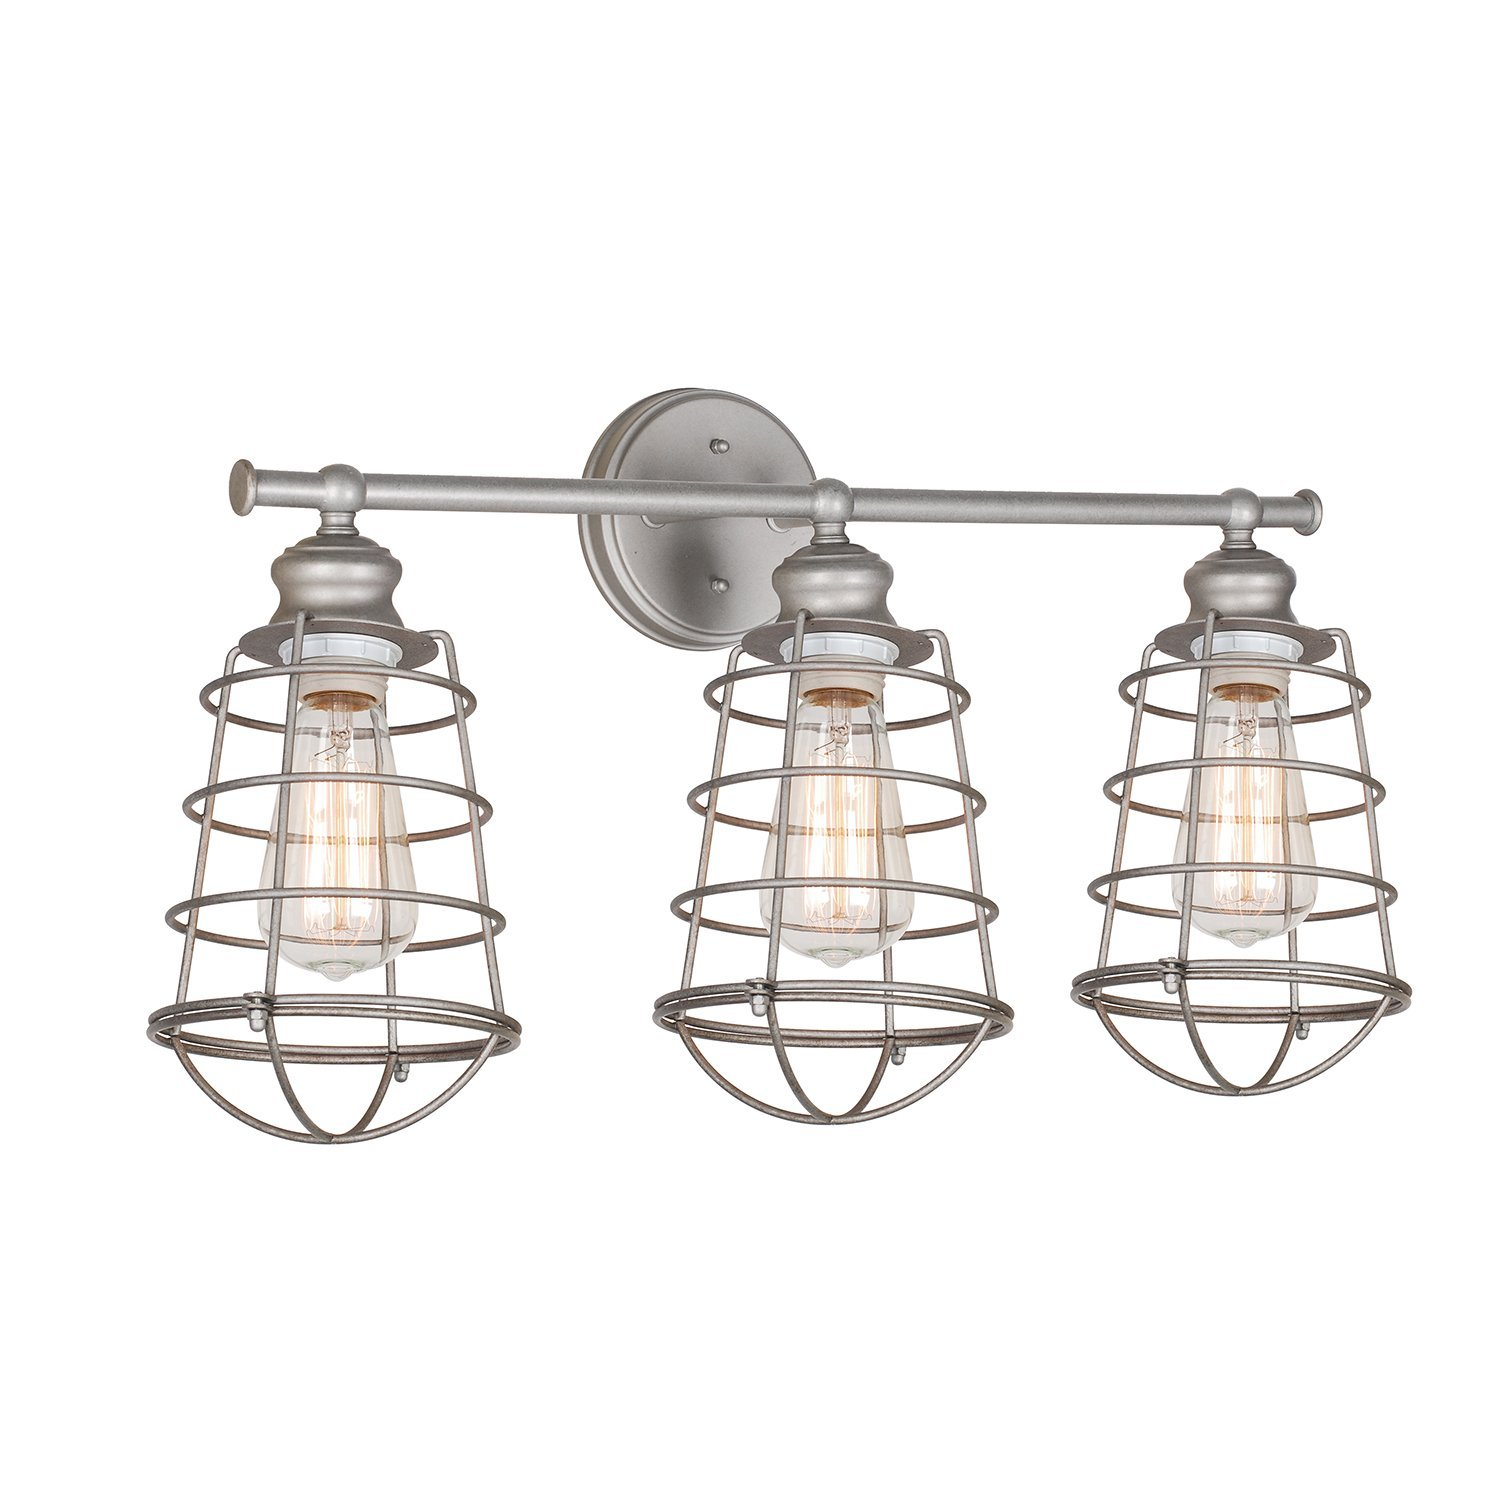 Design House Ajax 3-Light Bathroom Vanity Light, Galvanized Steel Finish - 519728